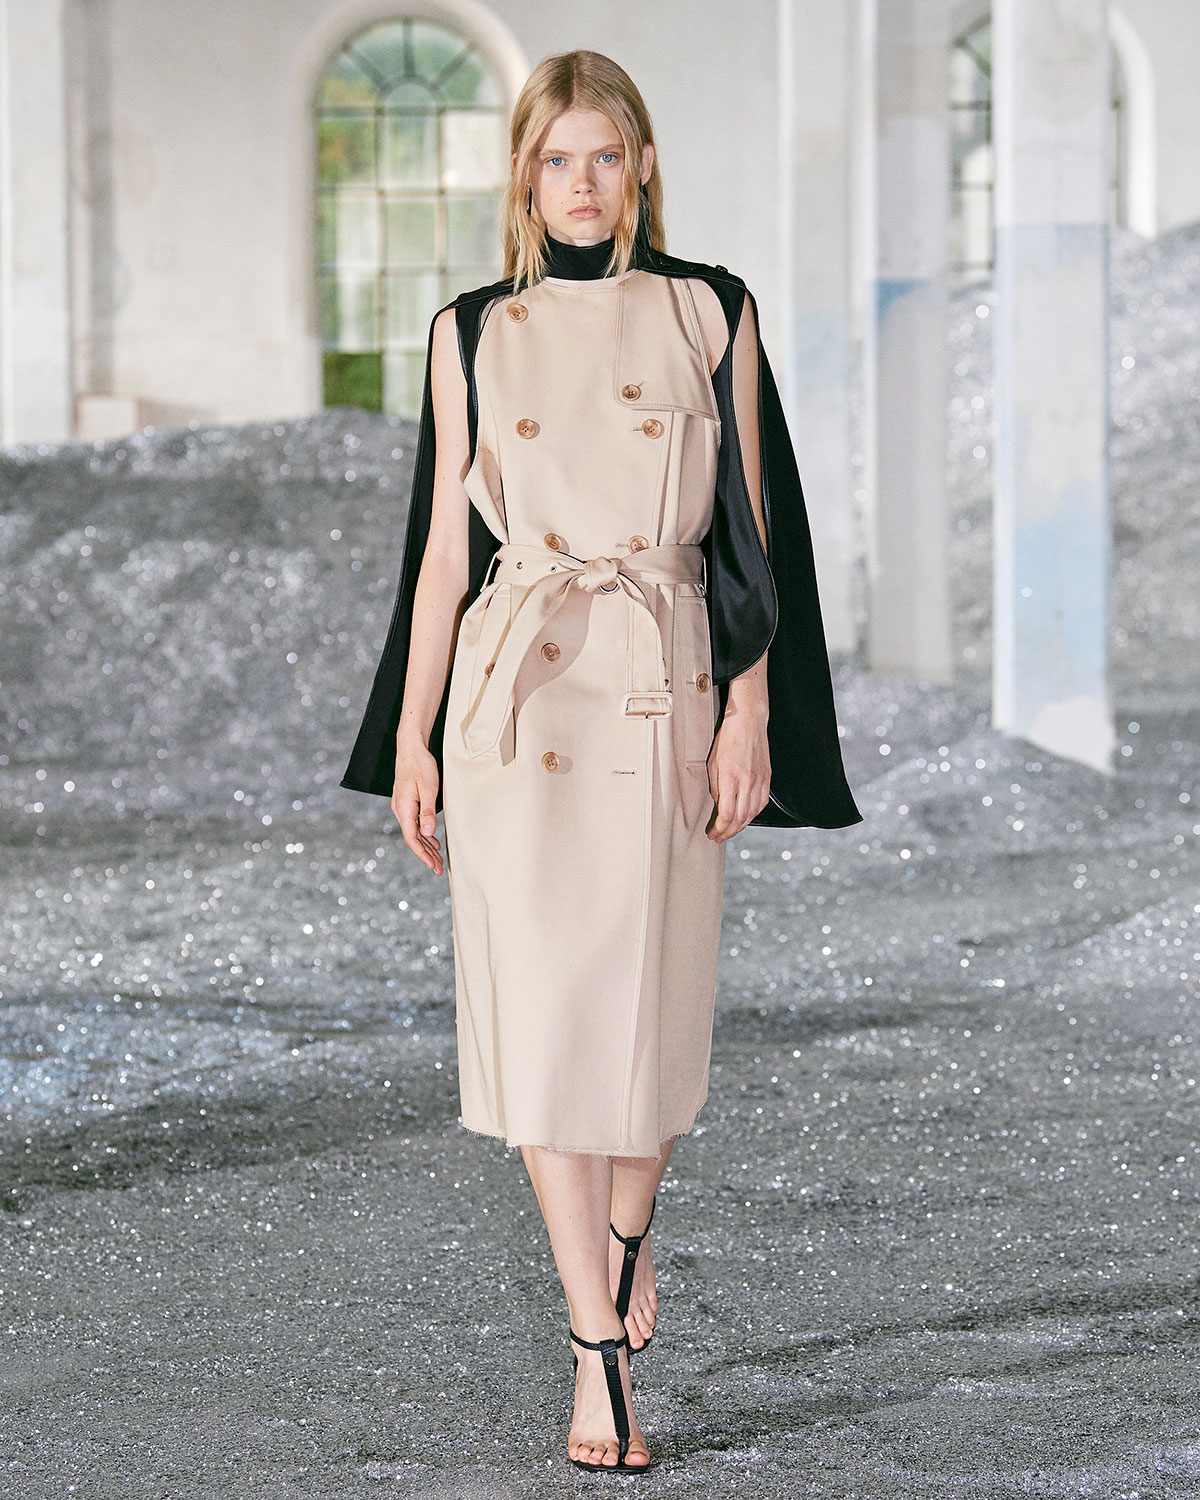 Burberry Spring Summer 2022 Collection